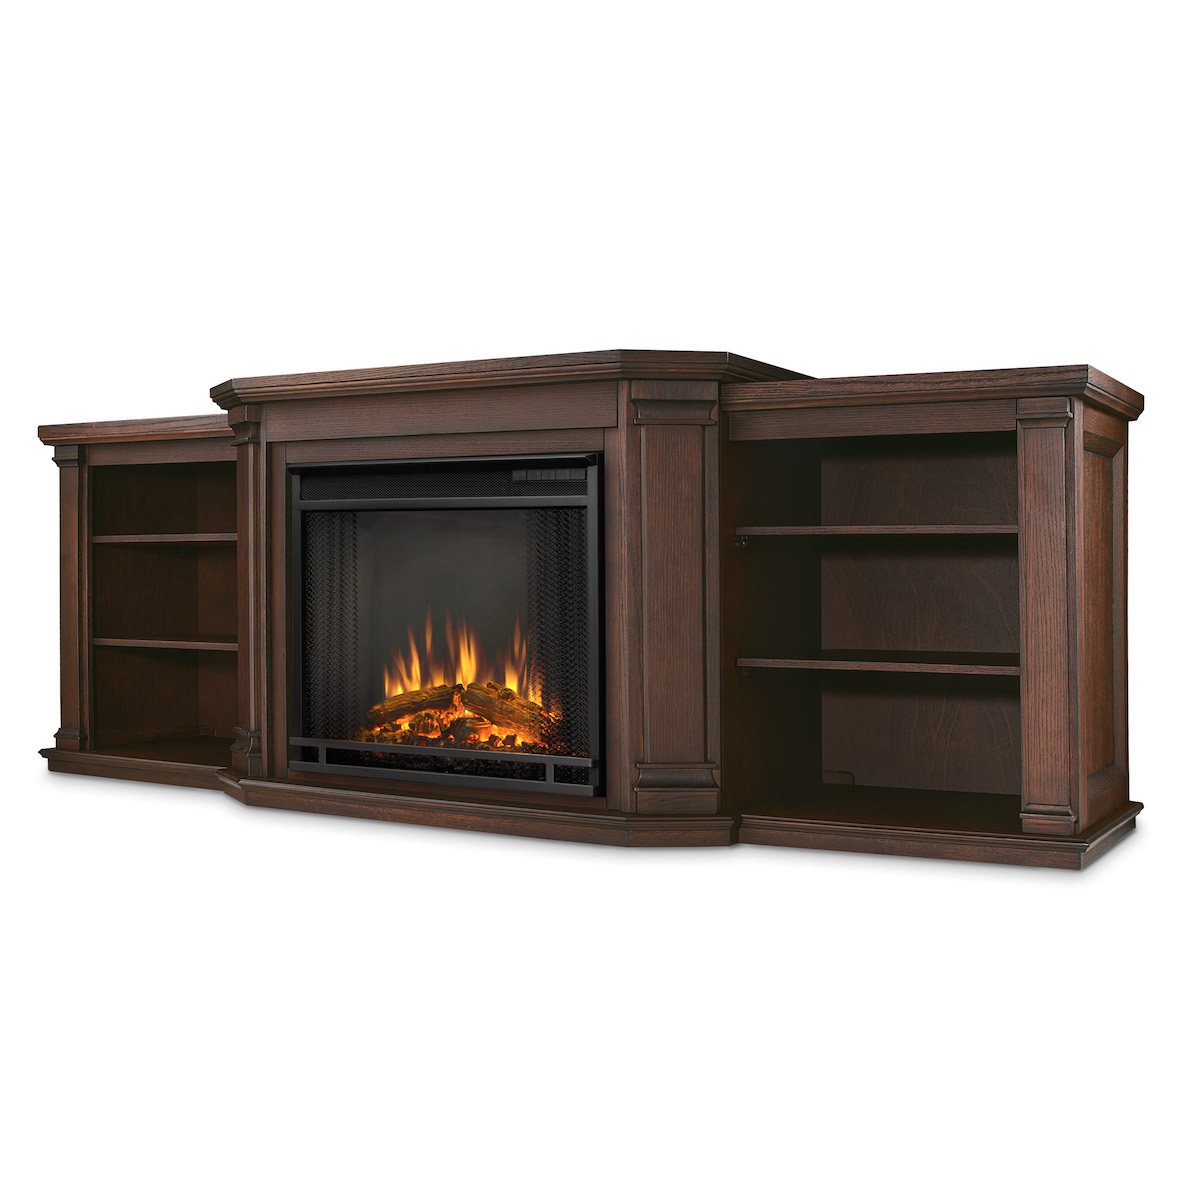 Real Flame Valmont Entertainment Center Electric Fireplace In Chestnut Oak